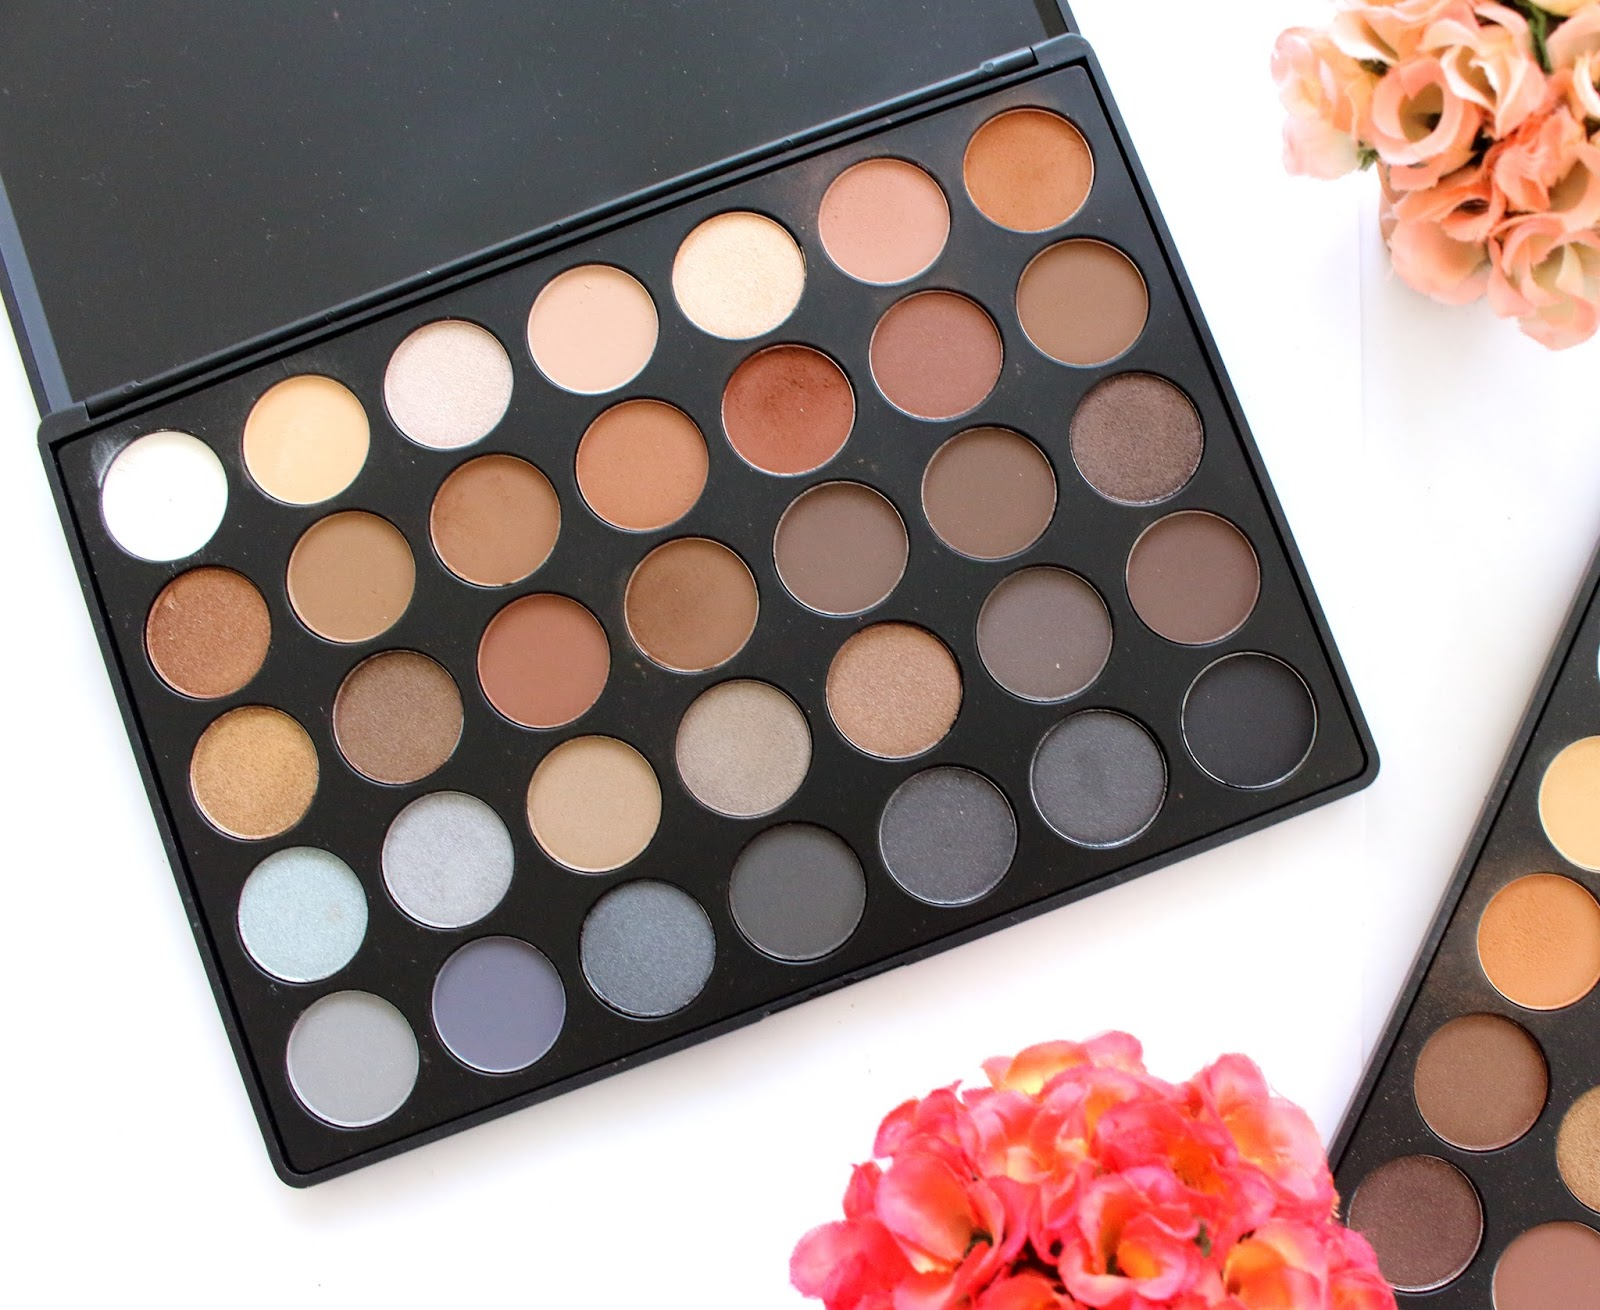 Morphe 35k eyeshadow palette review beauty in bold - Again The Quam That I Have With The 35o Palette Packaging Applies Also To This Palette It Has No Mirror It Is Large And It Is Light And Therefore